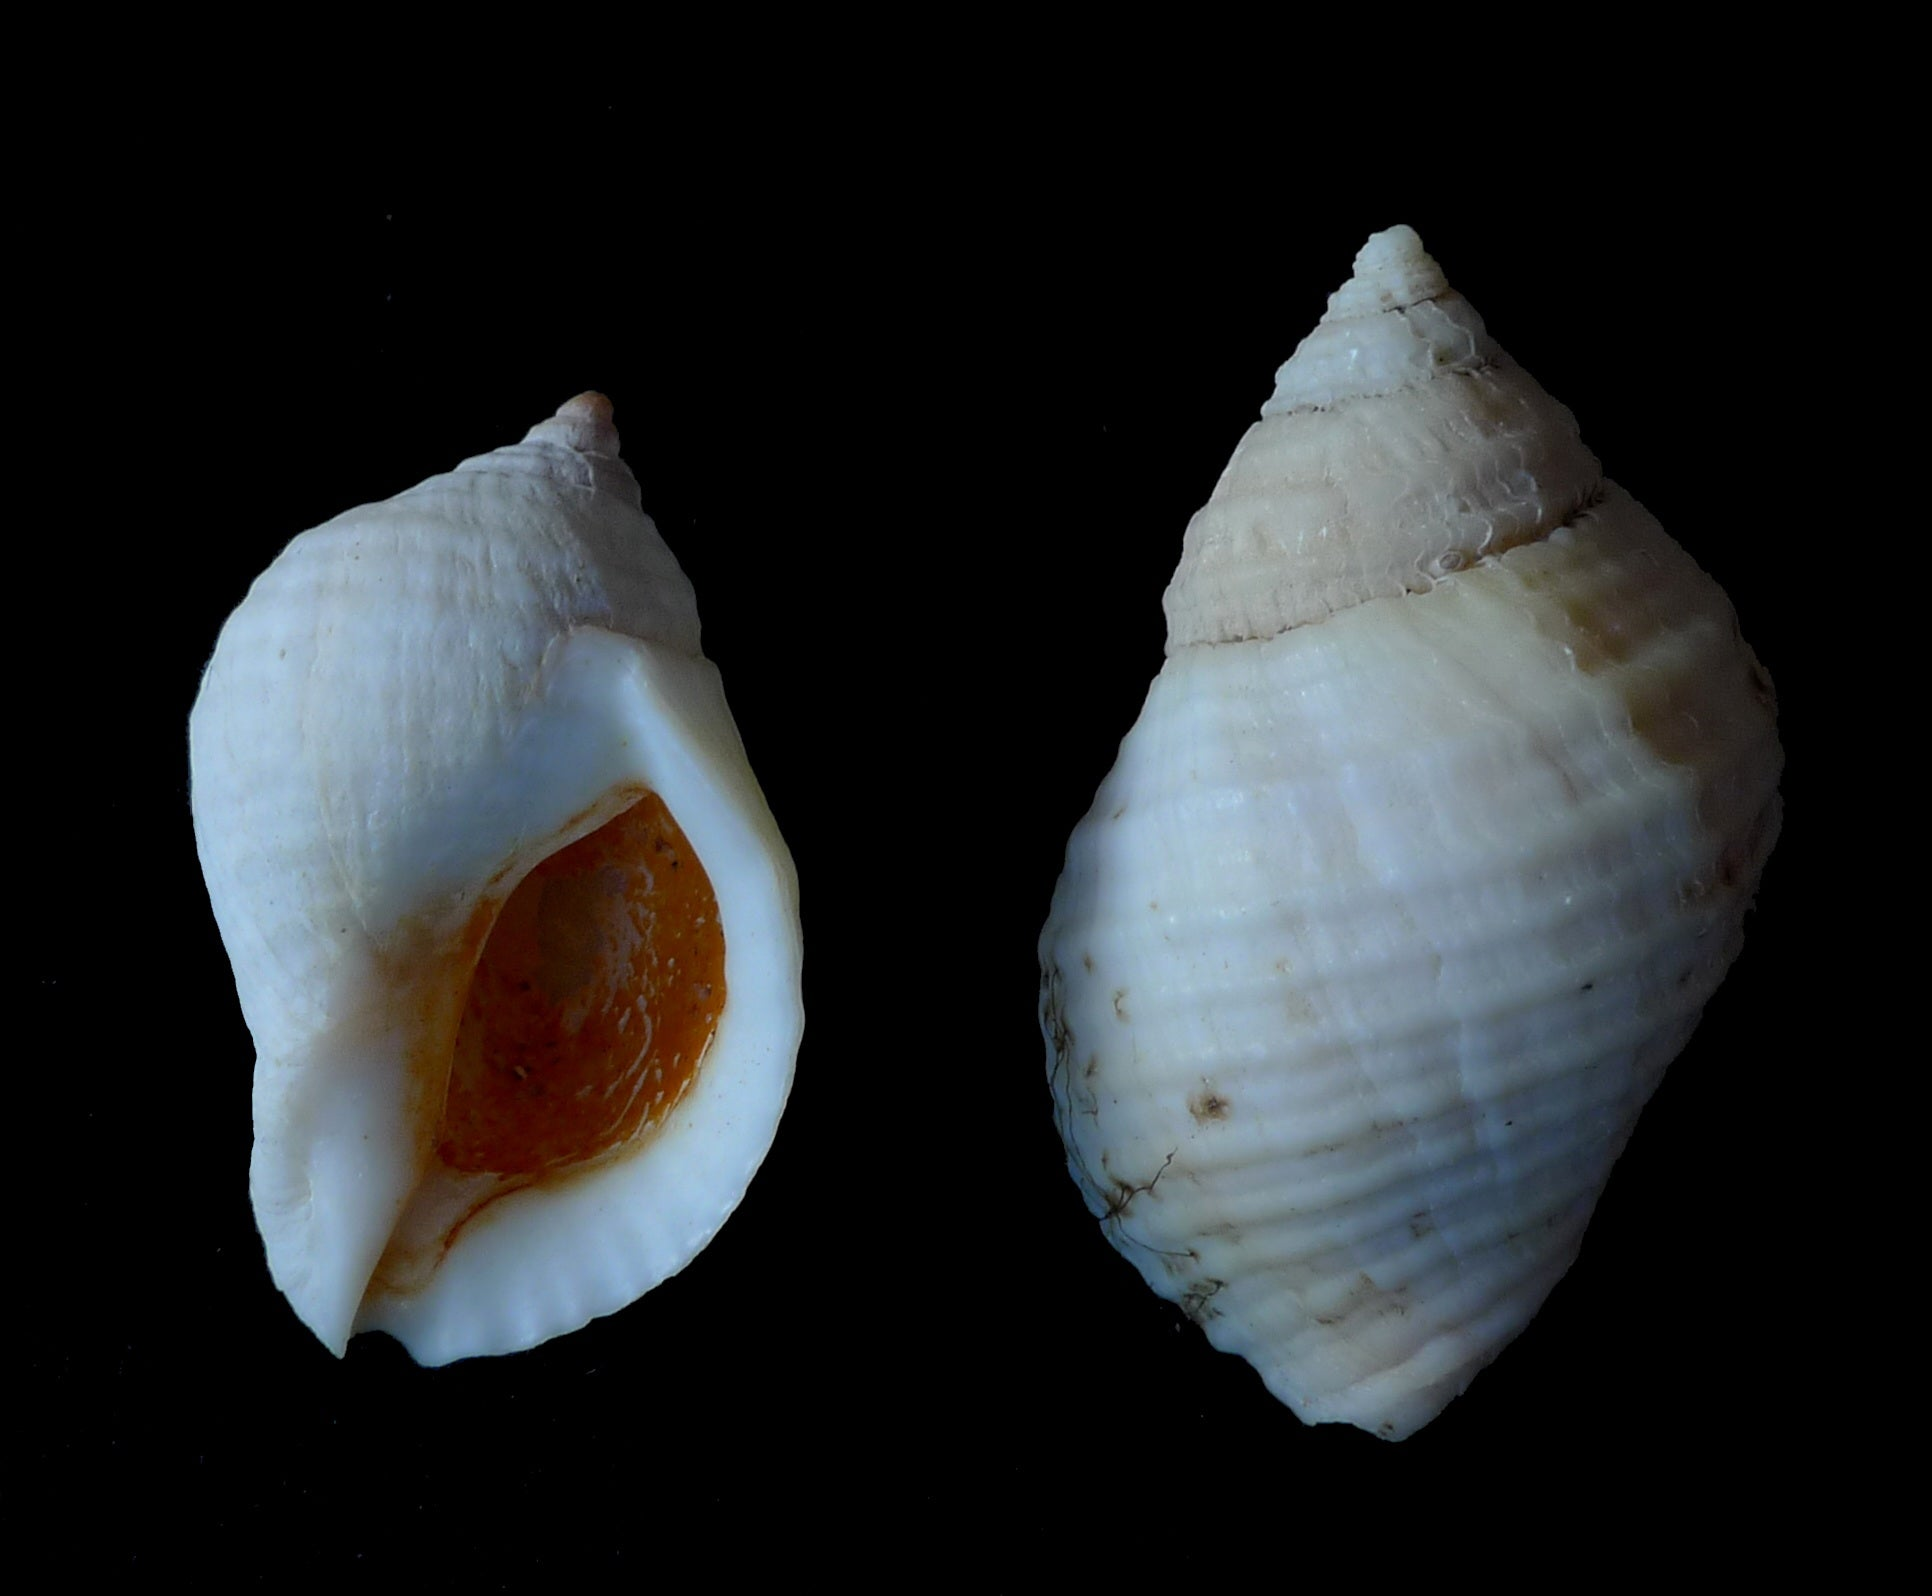 Six Years After Chemical Ban, Fewer Female Snails Are Growing Penises